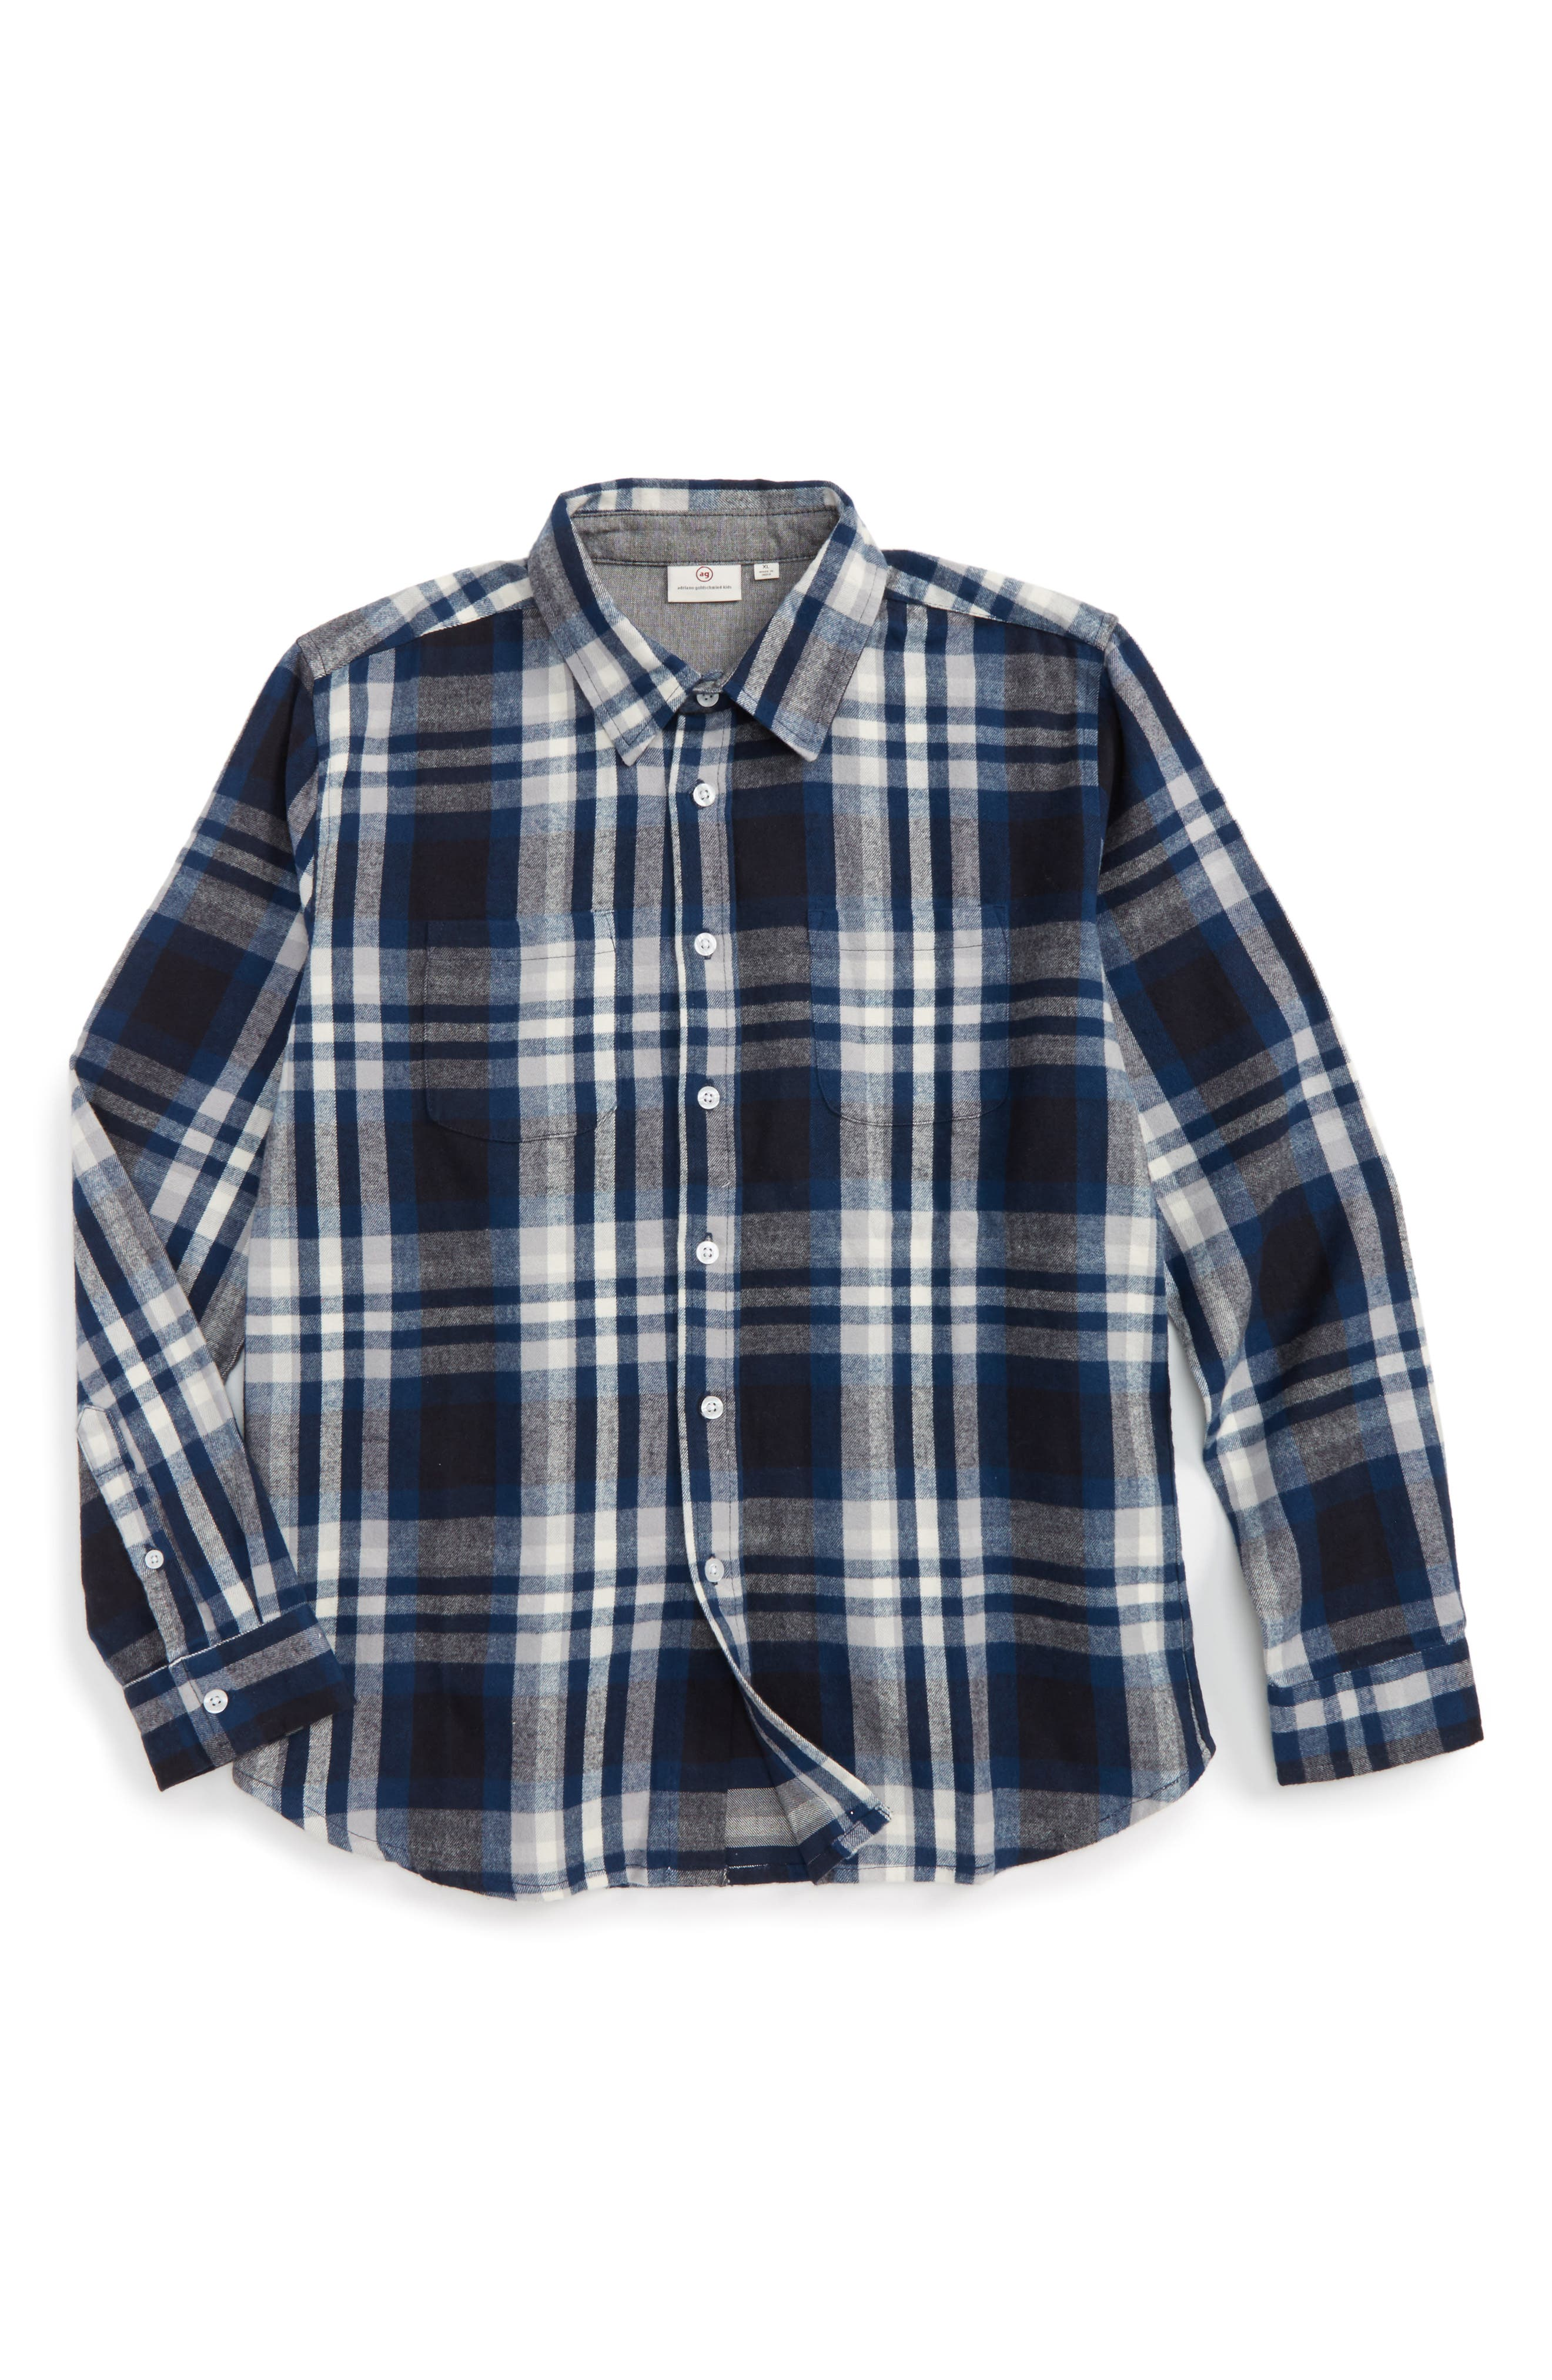 Alternate Image 1 Selected - ag adriano goldschmied kids Standford Flannel Shirt (Little Boys & Big Boys)